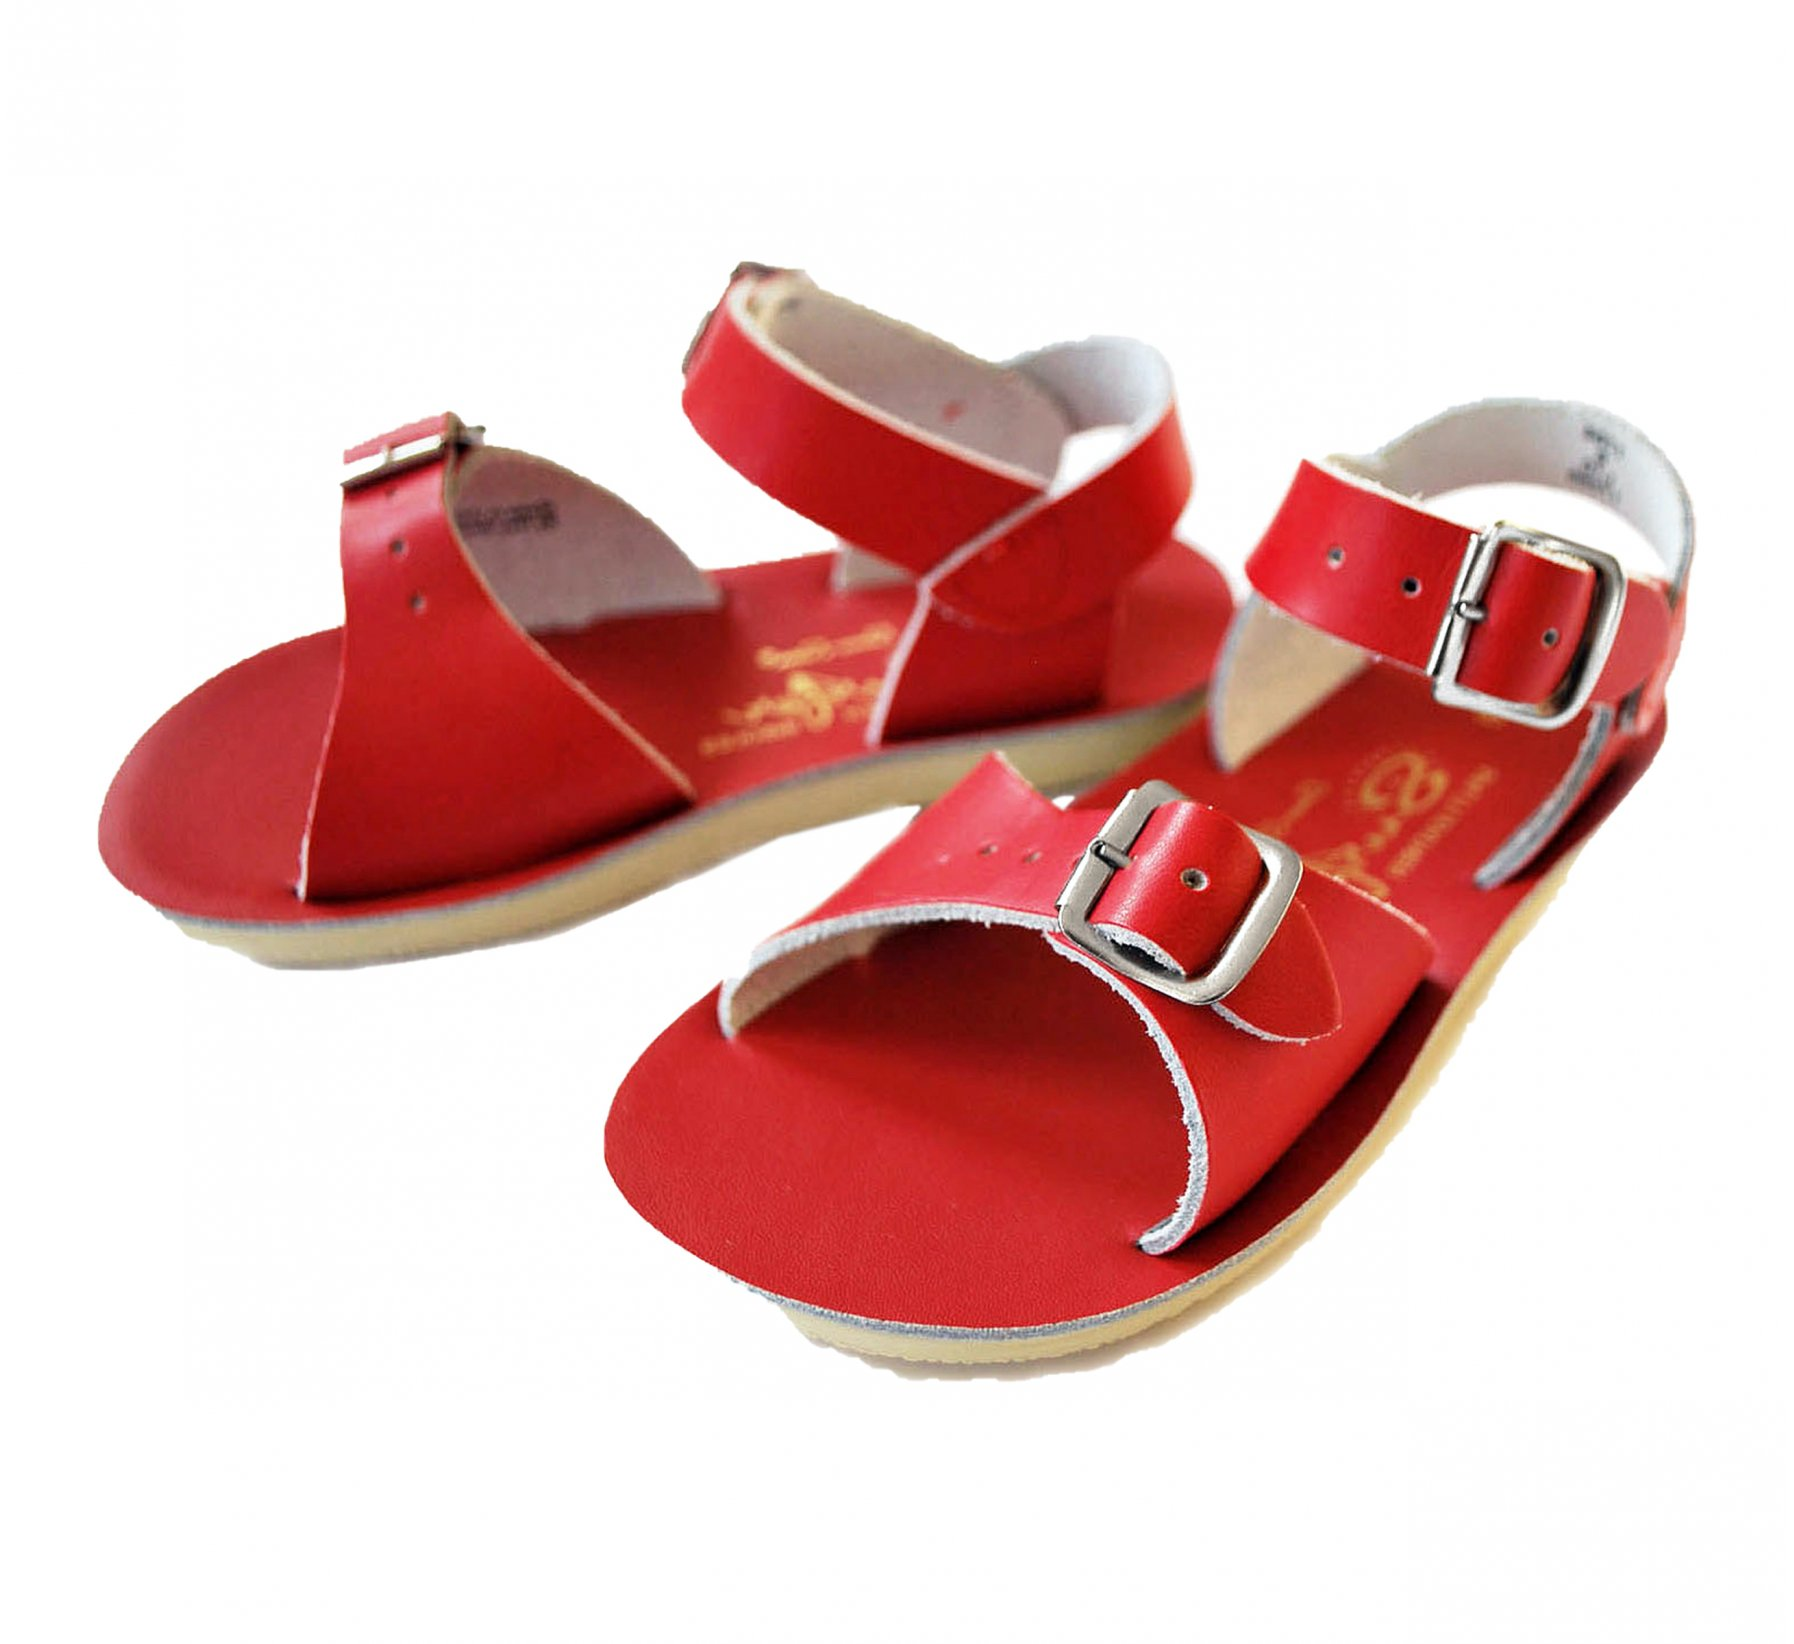 Surfer Merah - Salt Water Sandals